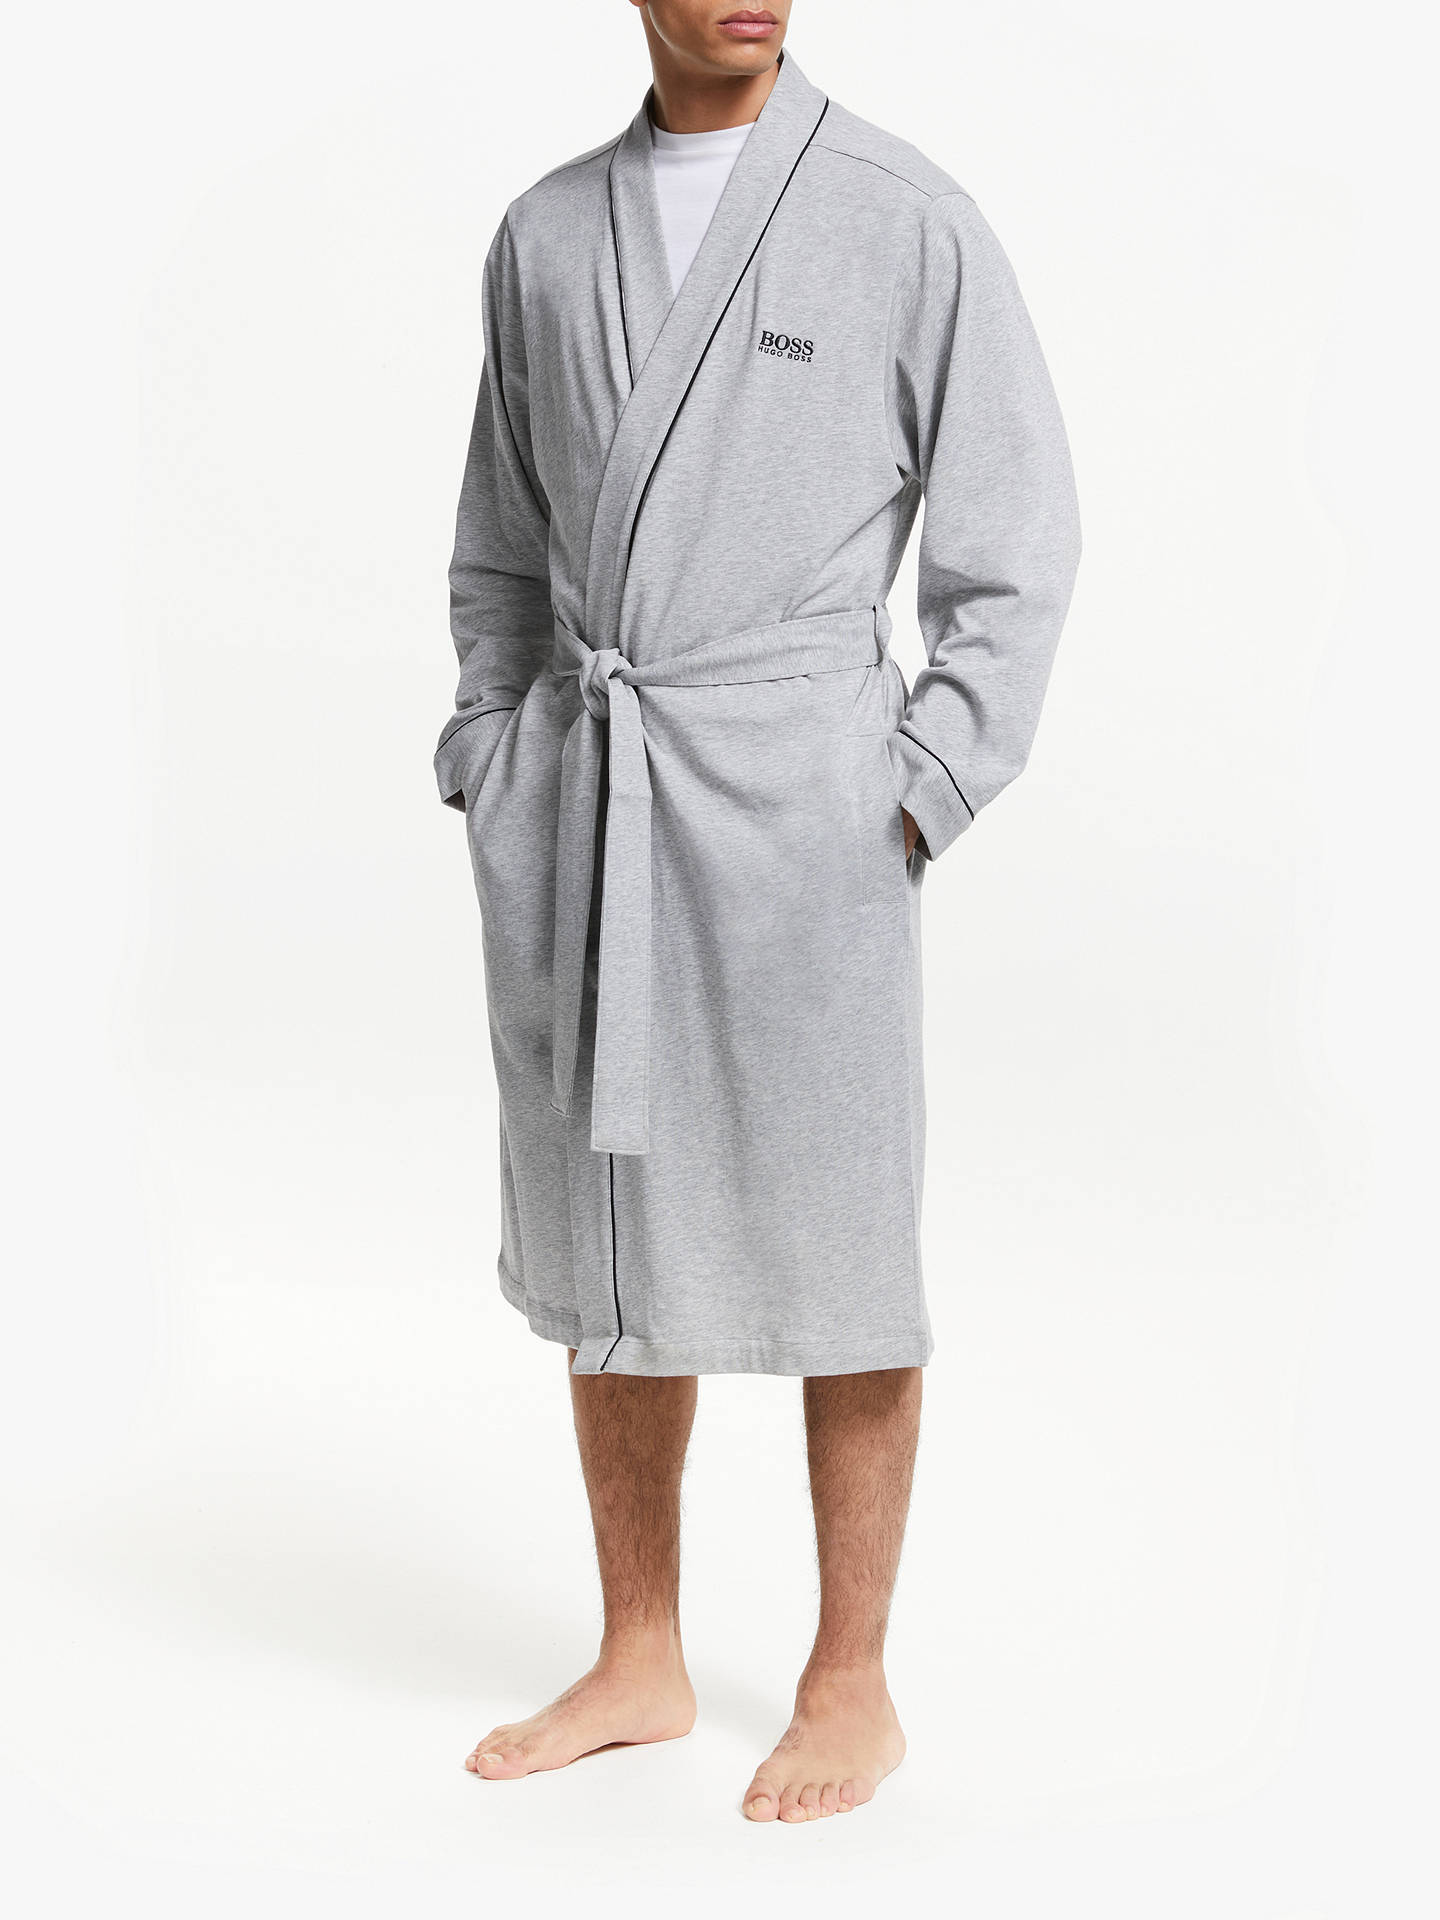 16d984cdc83d Buy BOSS Contrast Piping Cotton Kimono Robe, Grey, L Online at  johnlewis.com ...